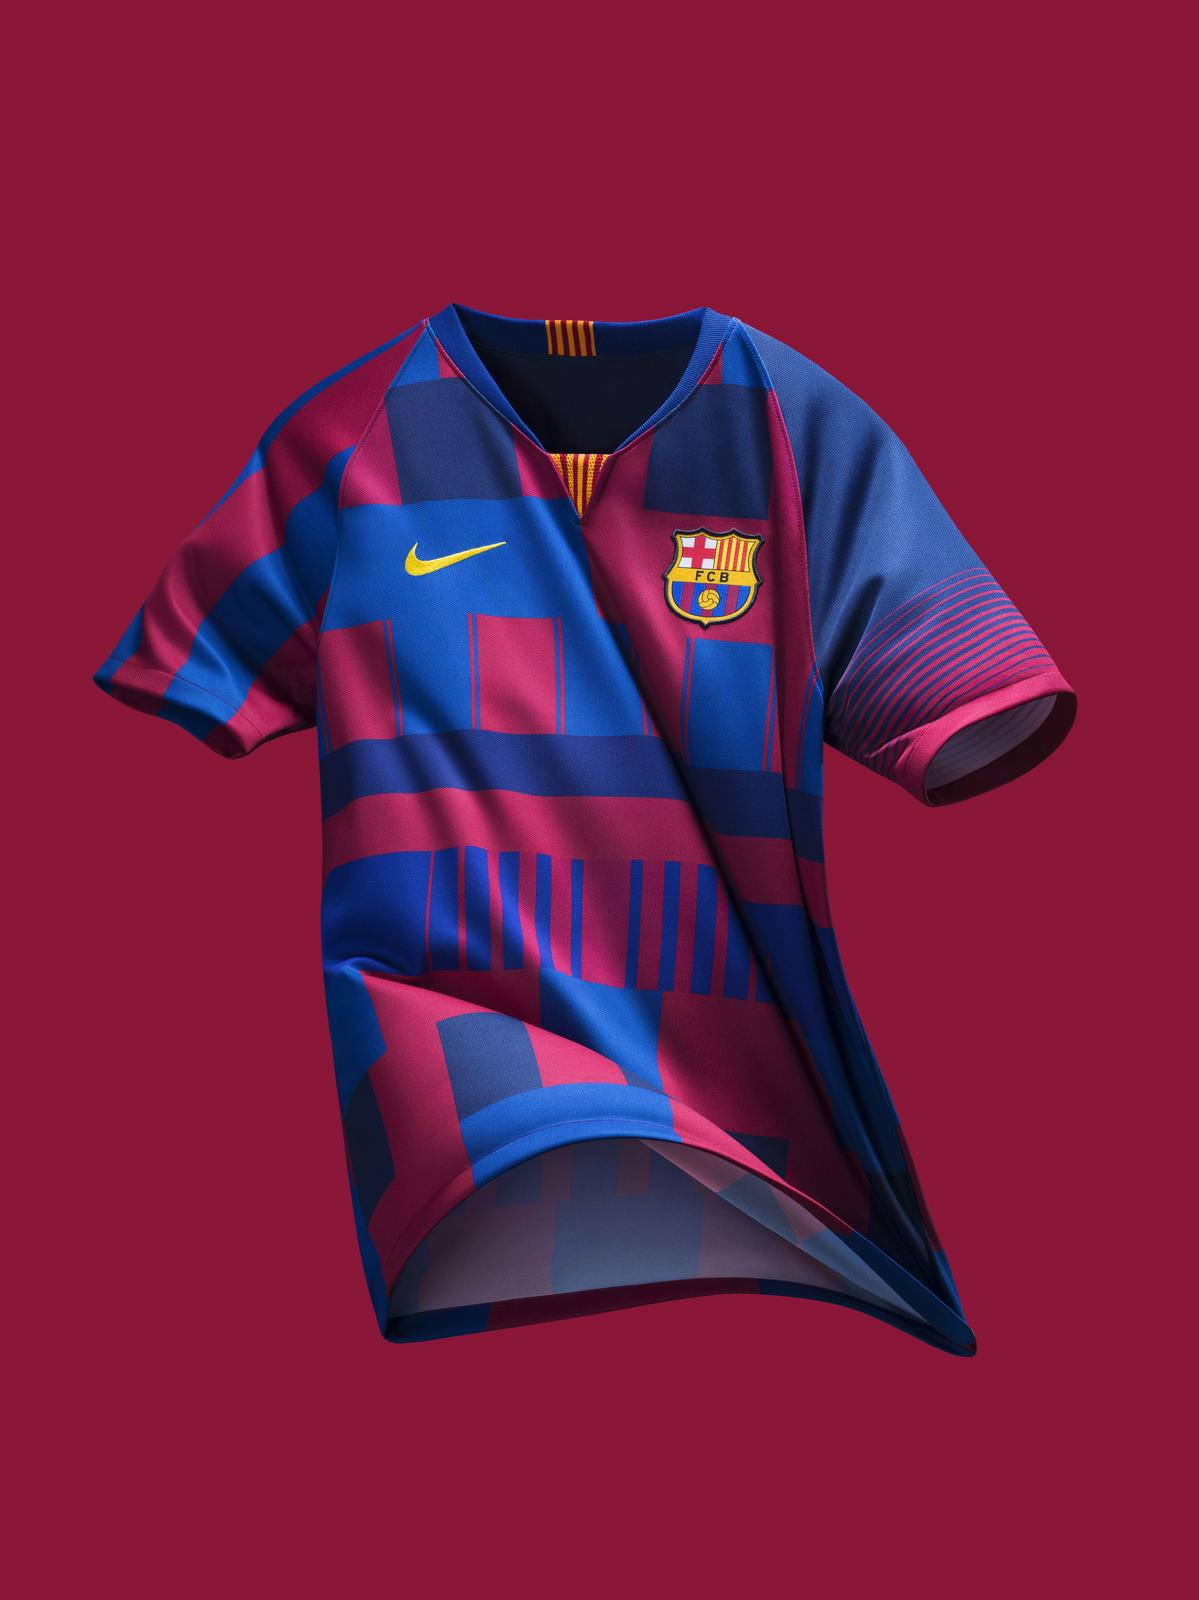 d1067765c More Coming - Here Are All Nike Mash-Up Kits Created So Far - Footy ...